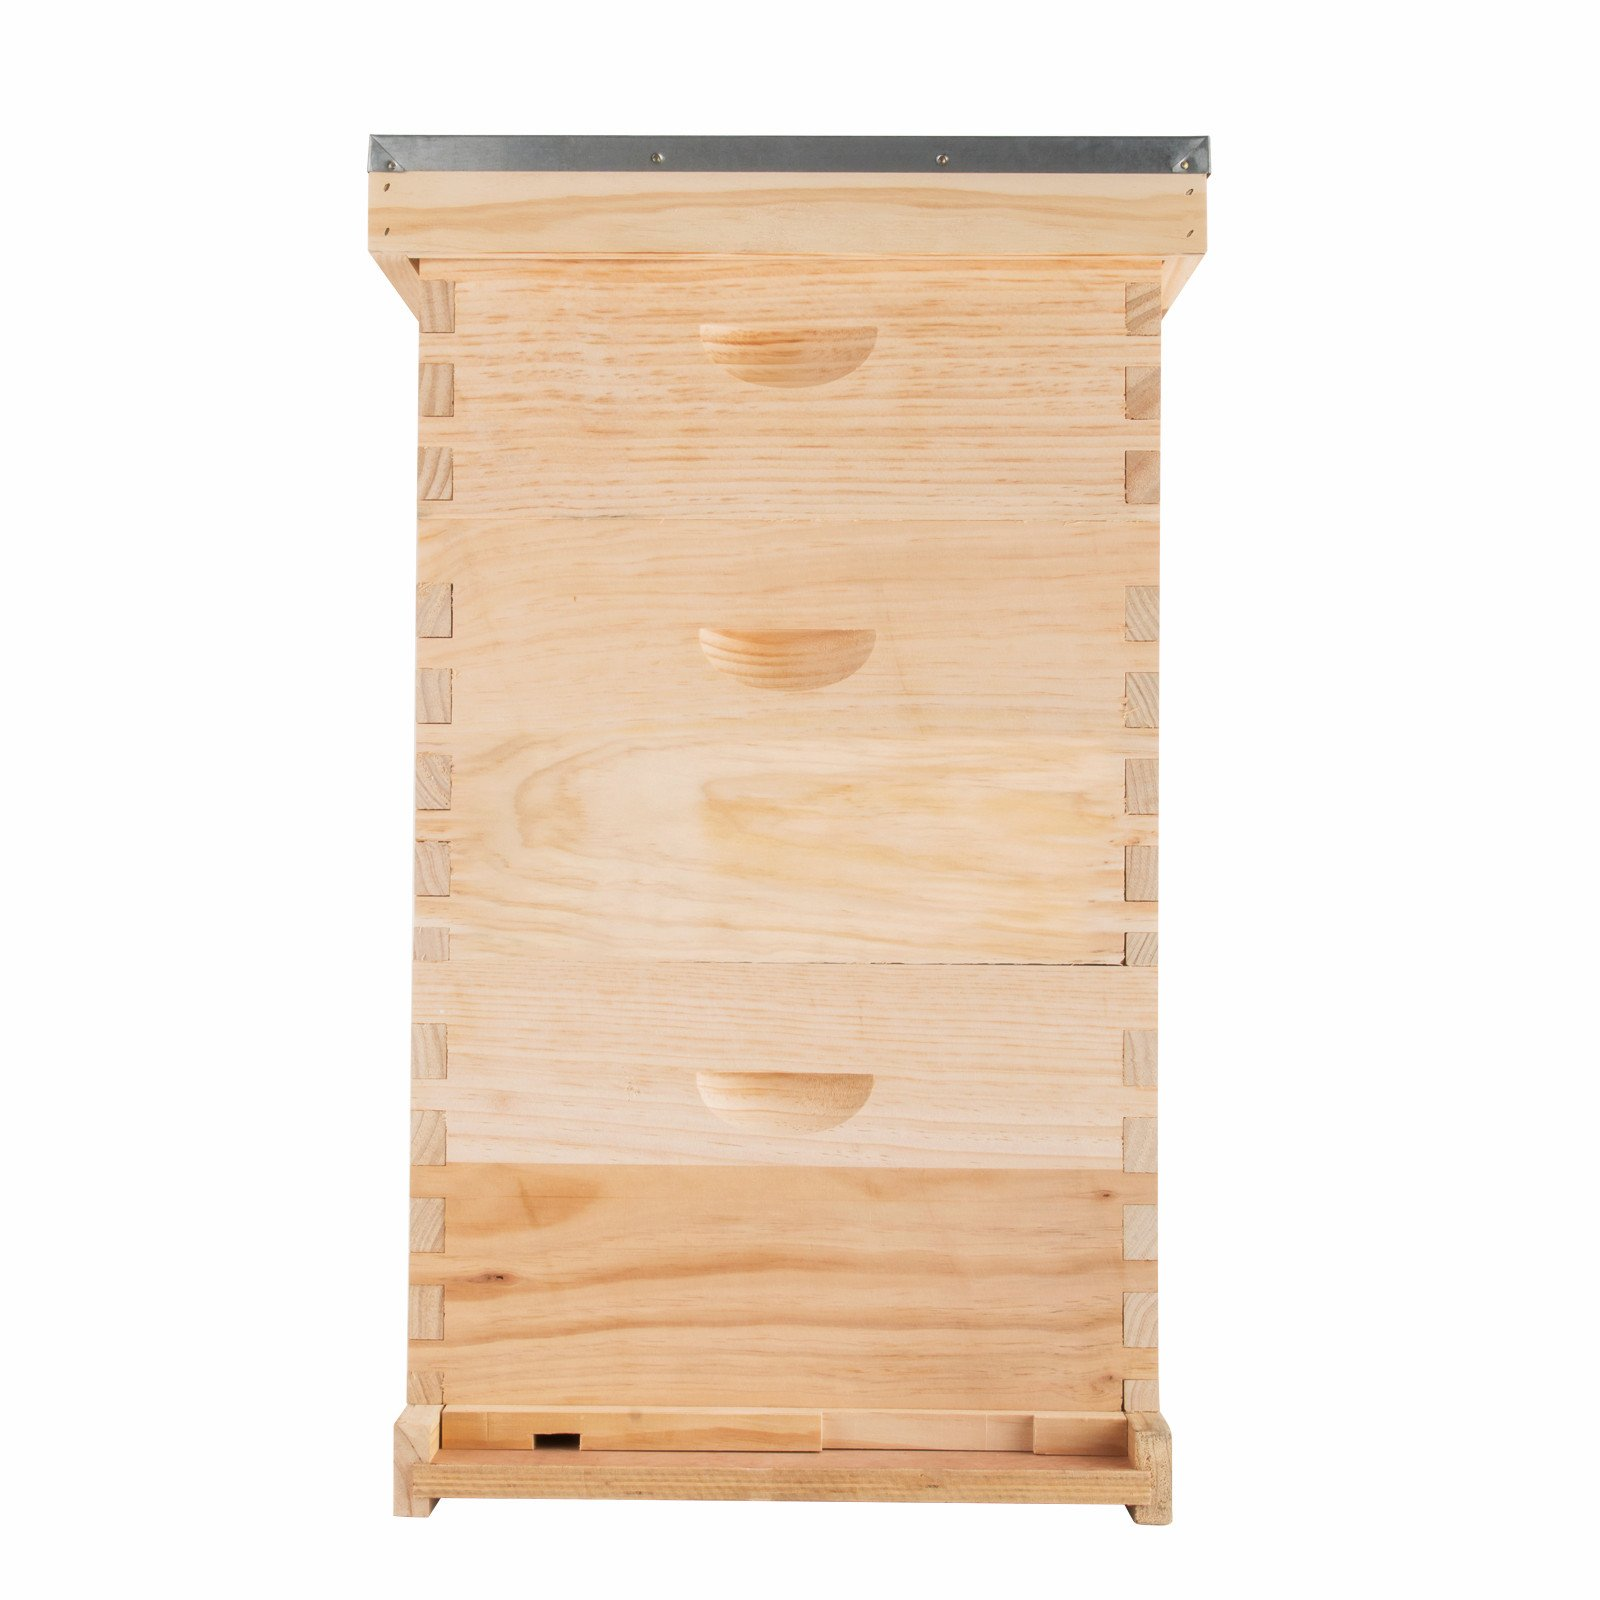 Popsport Langstroth Bee Hive 10 Frame 2 Deep 1 Medium Beehive Frames Complete Box Kit with Frames and Wax Foundations Beehive Bee House for Beekeepers (10 Frame 2 Deep 1 Medium Complete Box Kit)